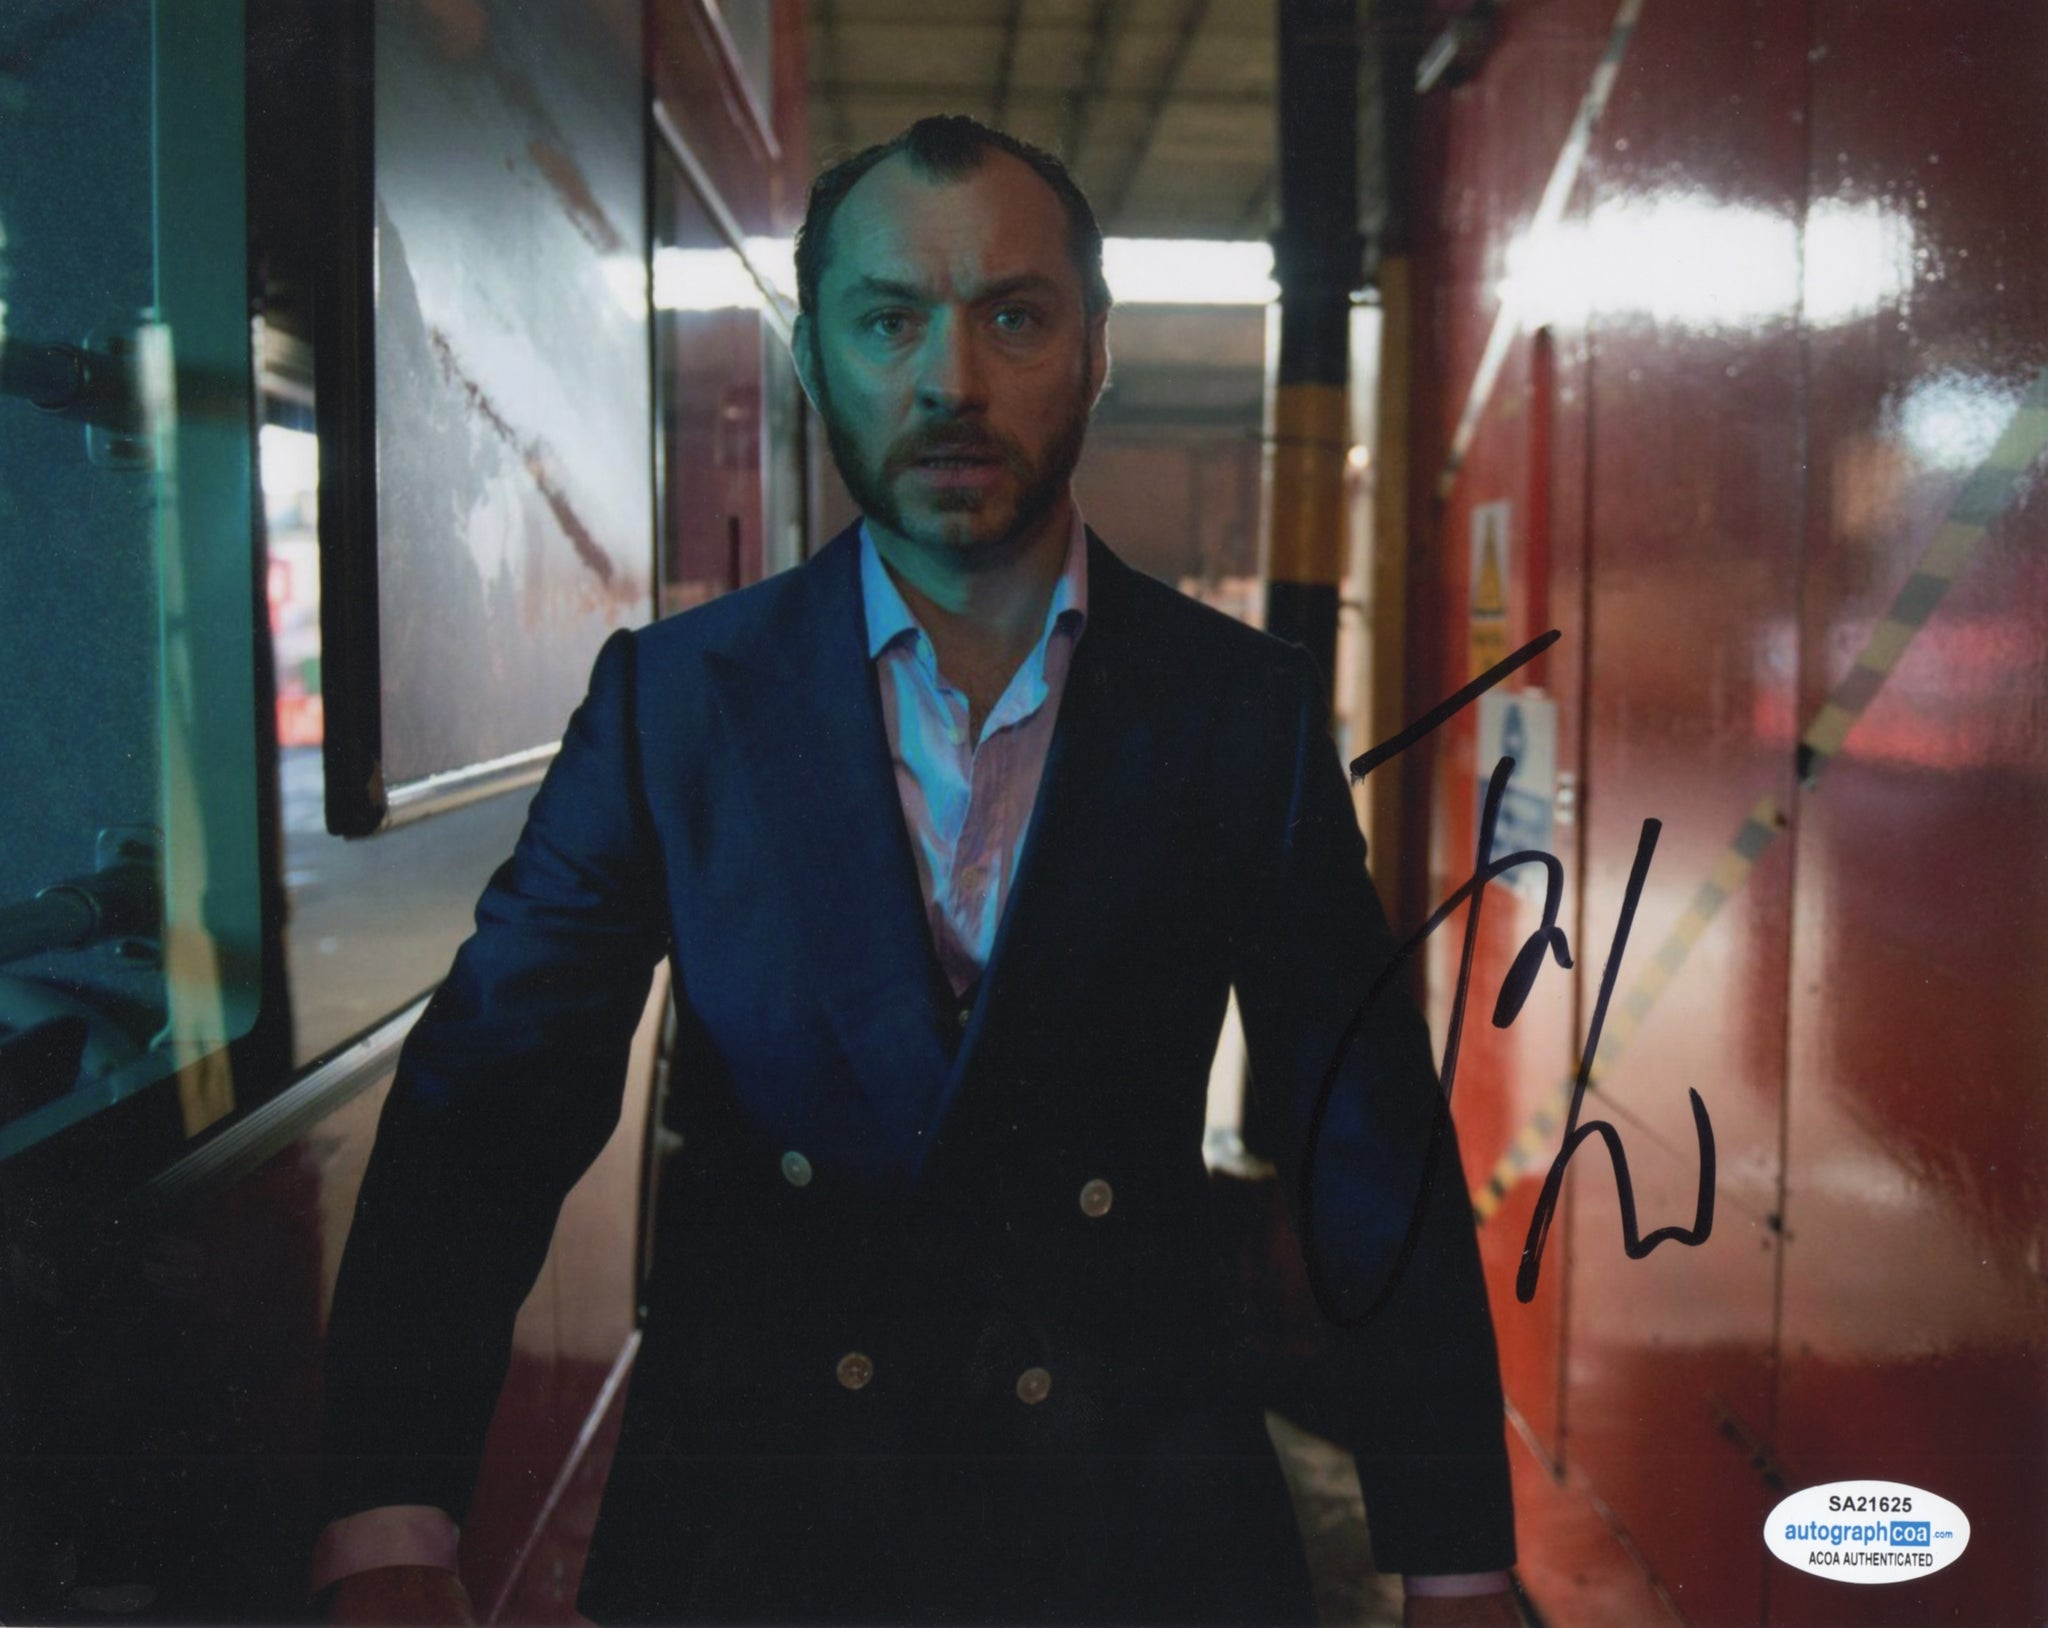 Jude Law Signed Autograph 8x10 Photo ACOA #5